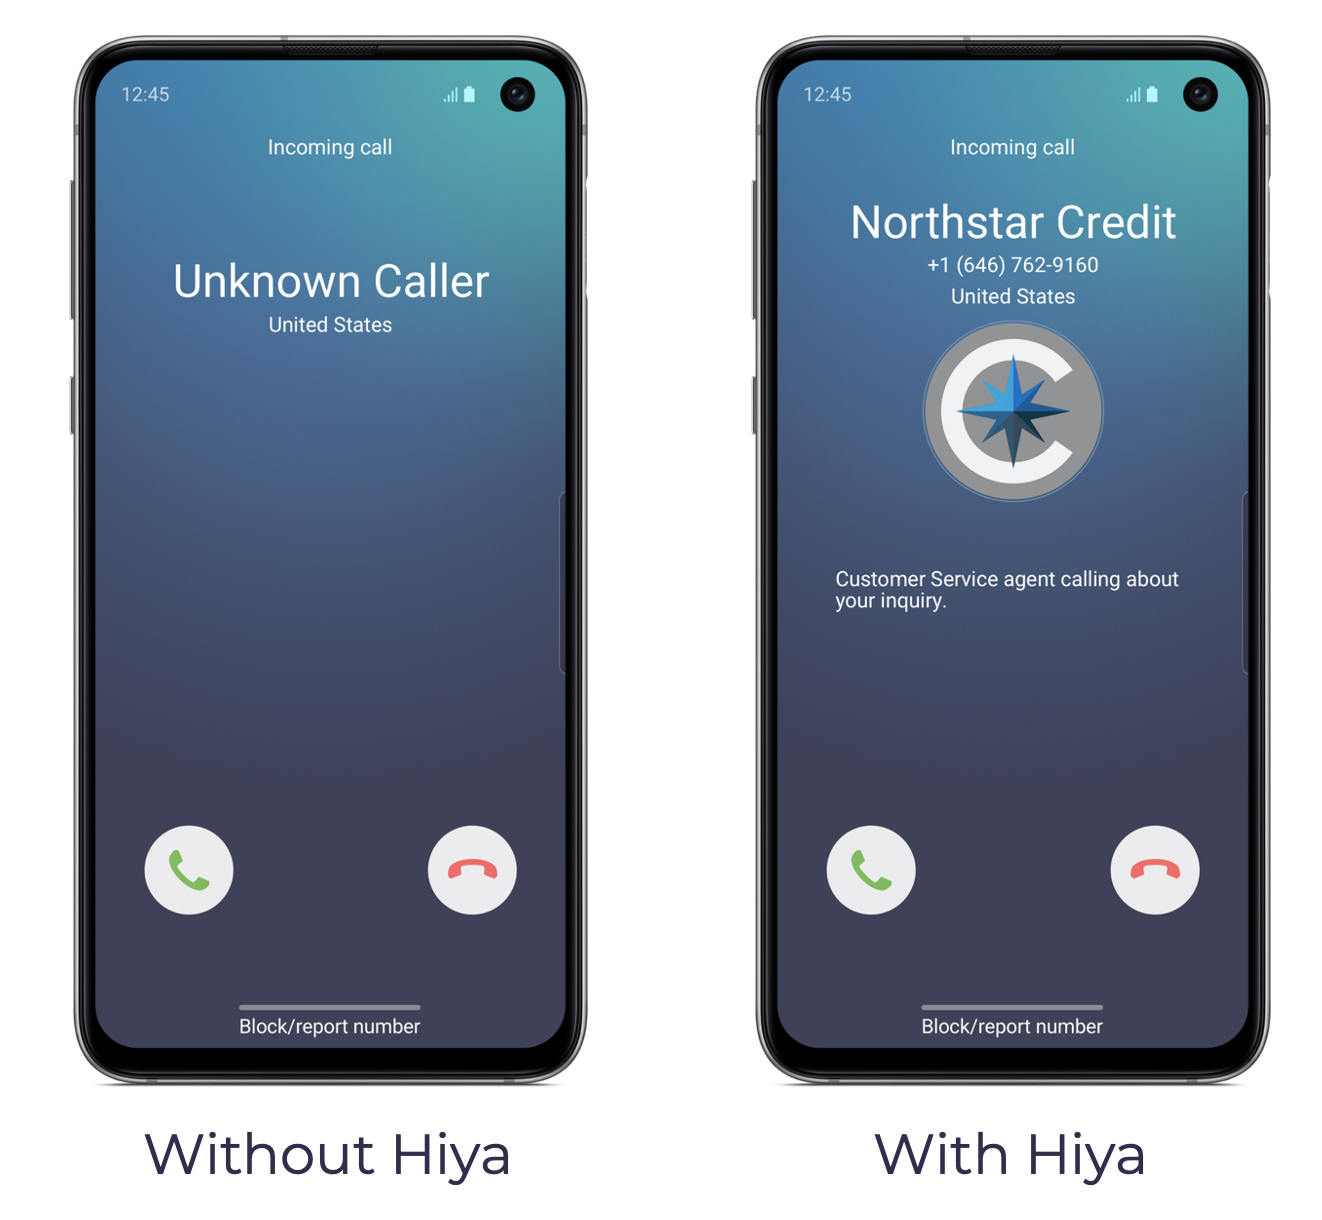 With & Without Hiya Connect phone mockups